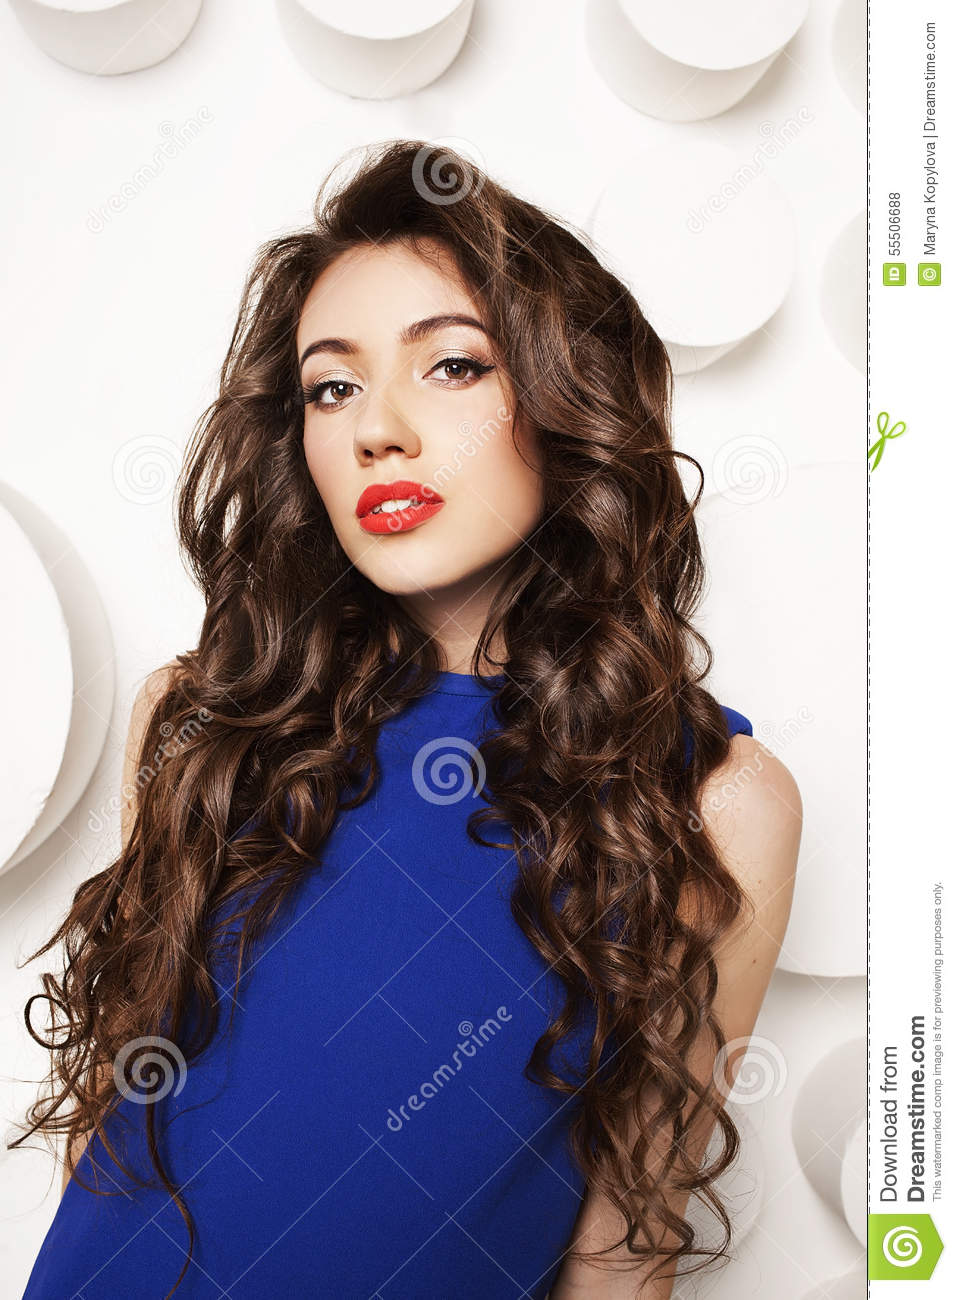 Portrait Of Beautiful Young Woman With Curly Long Brown Hair In Blue